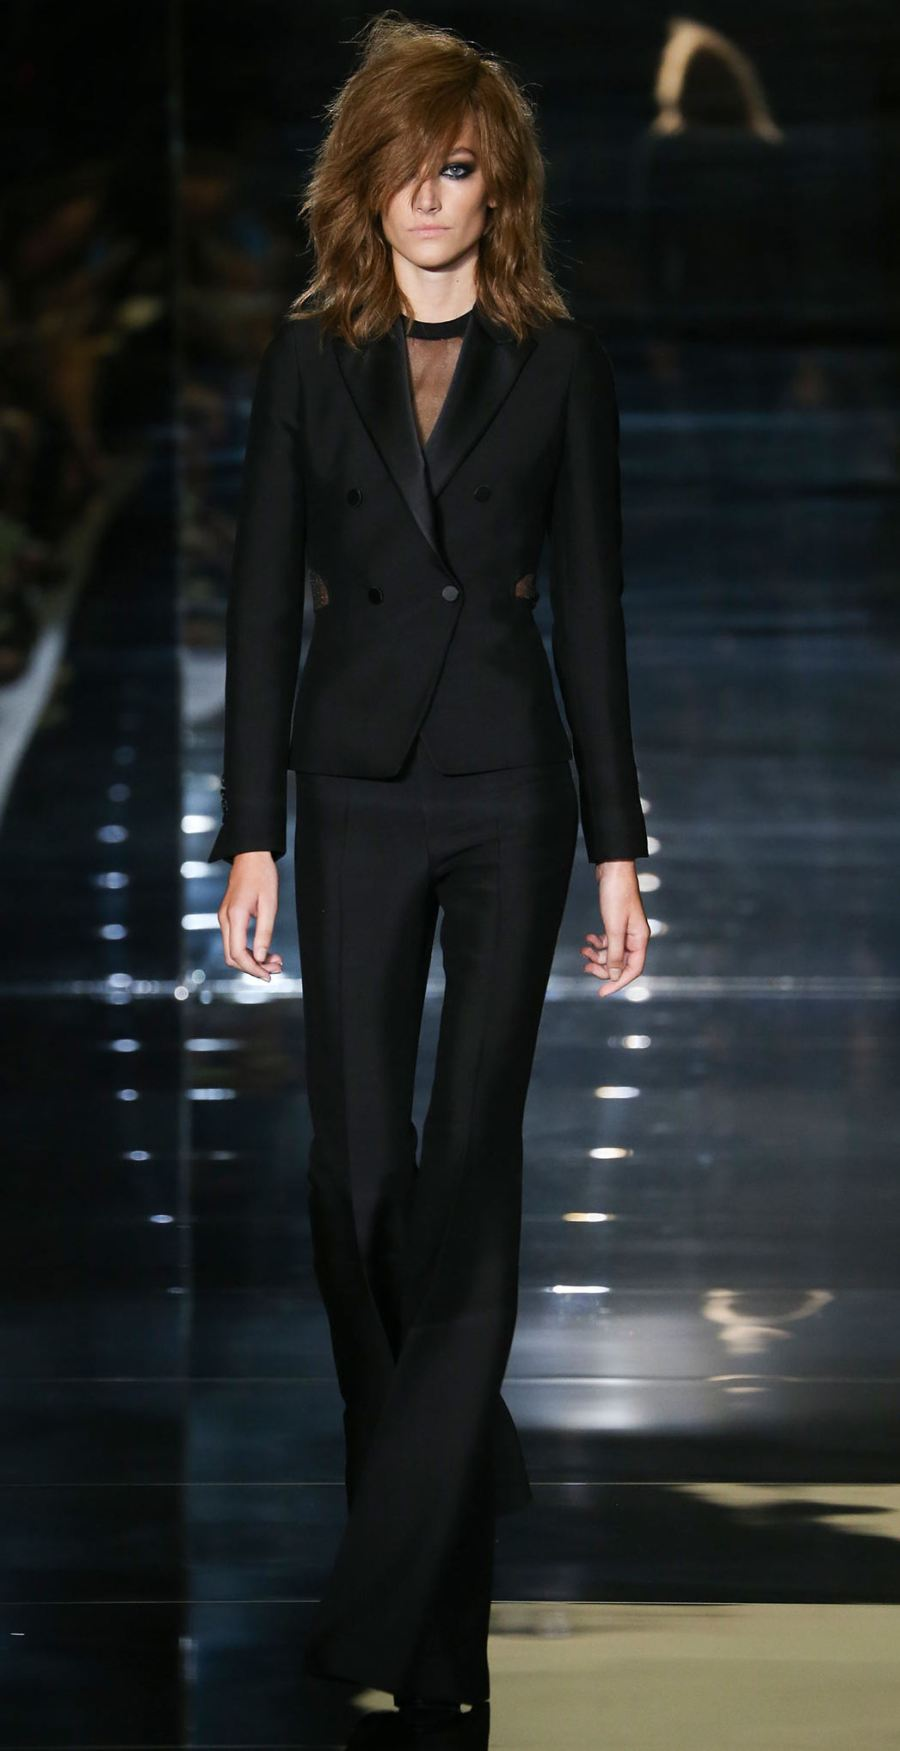 Tom Ford SS15 Black Flared Pant Suit on Exshoesme.com